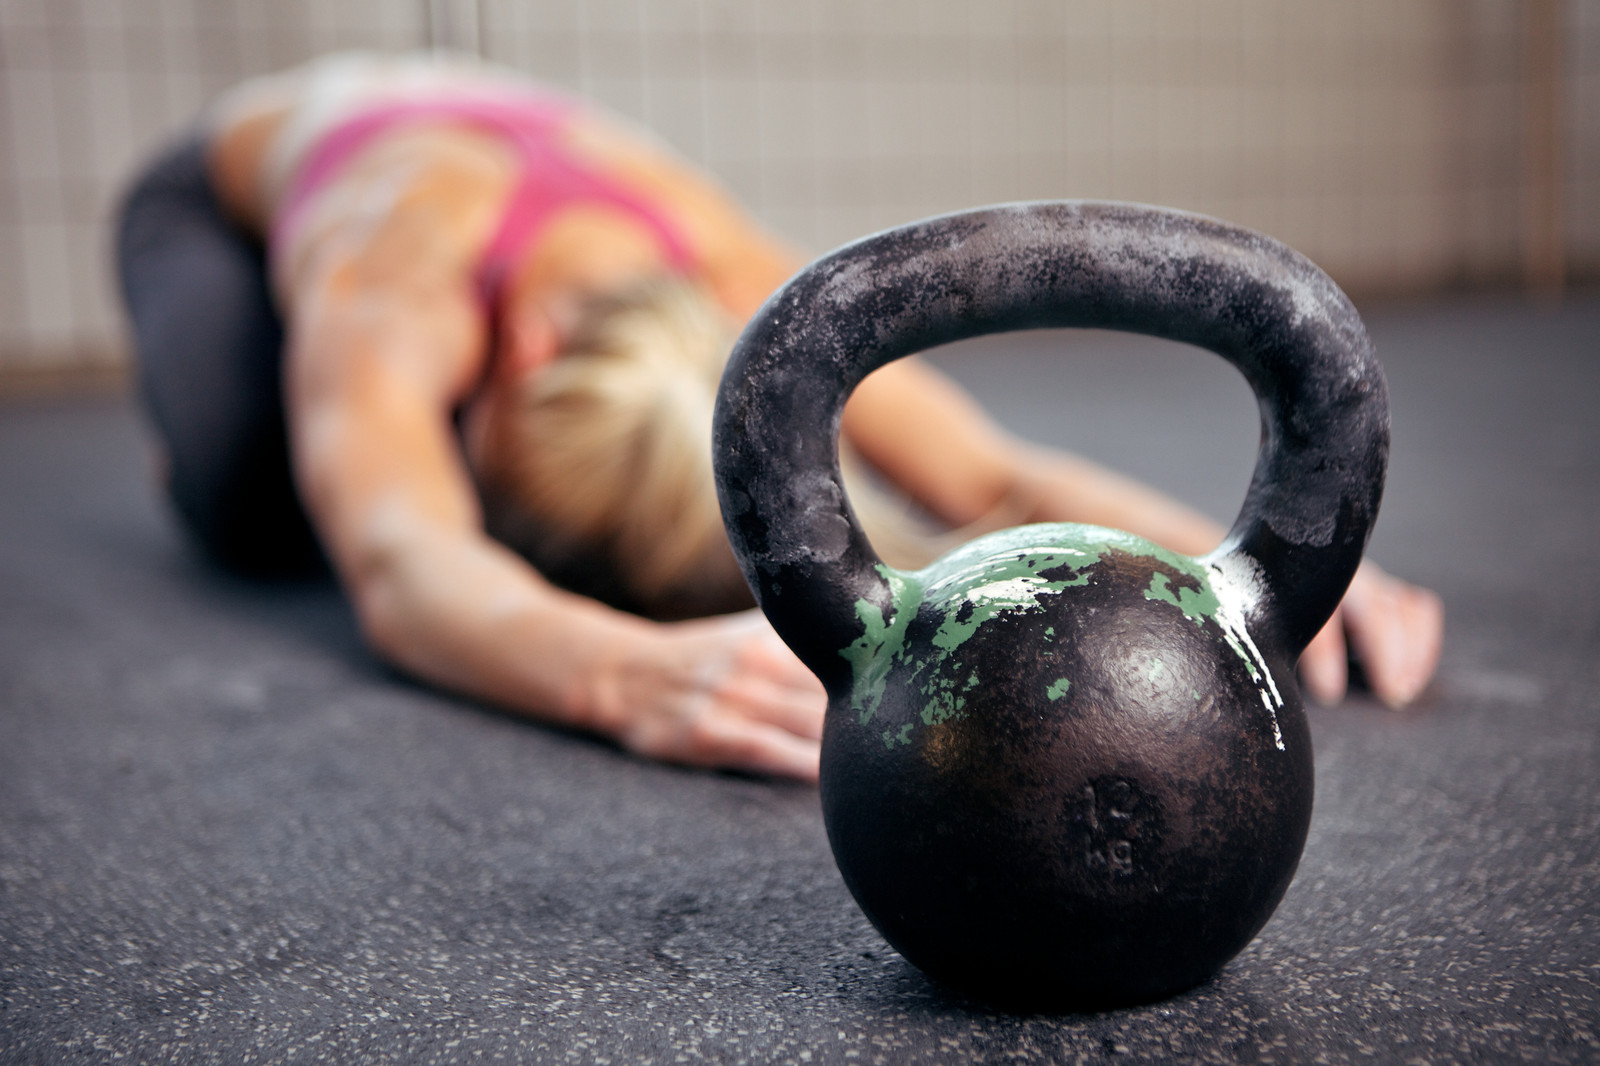 Childs-pose-kettlebell.jpg